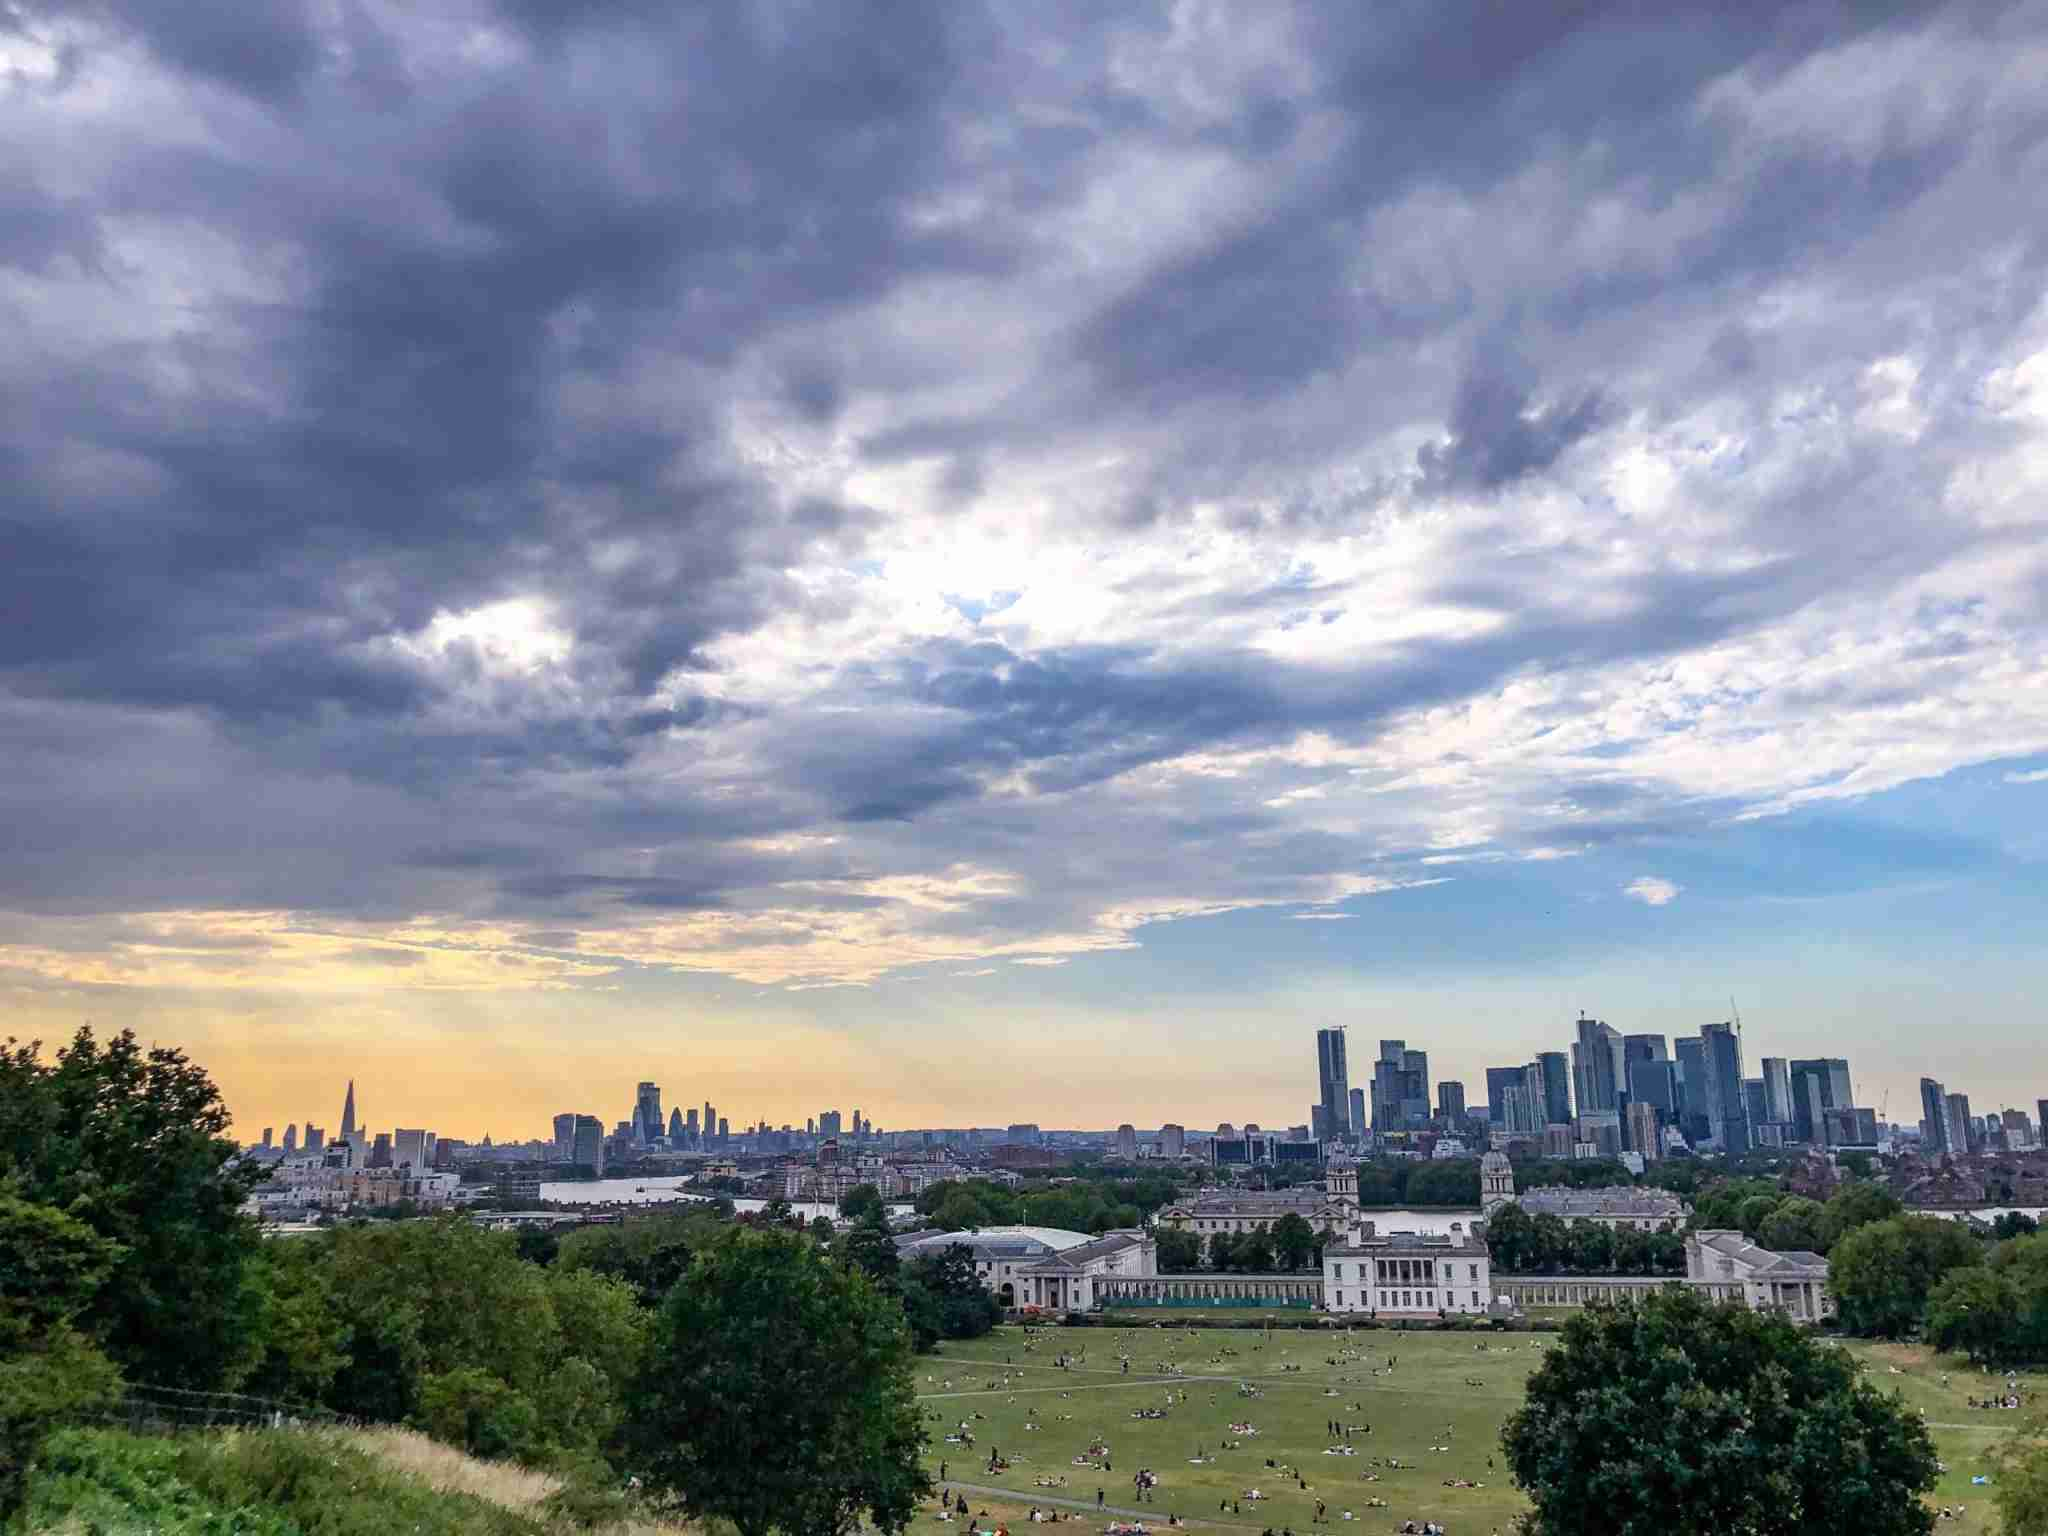 London from the Greenwich Observatory. Photo by Christian Kramer / The Points Guy